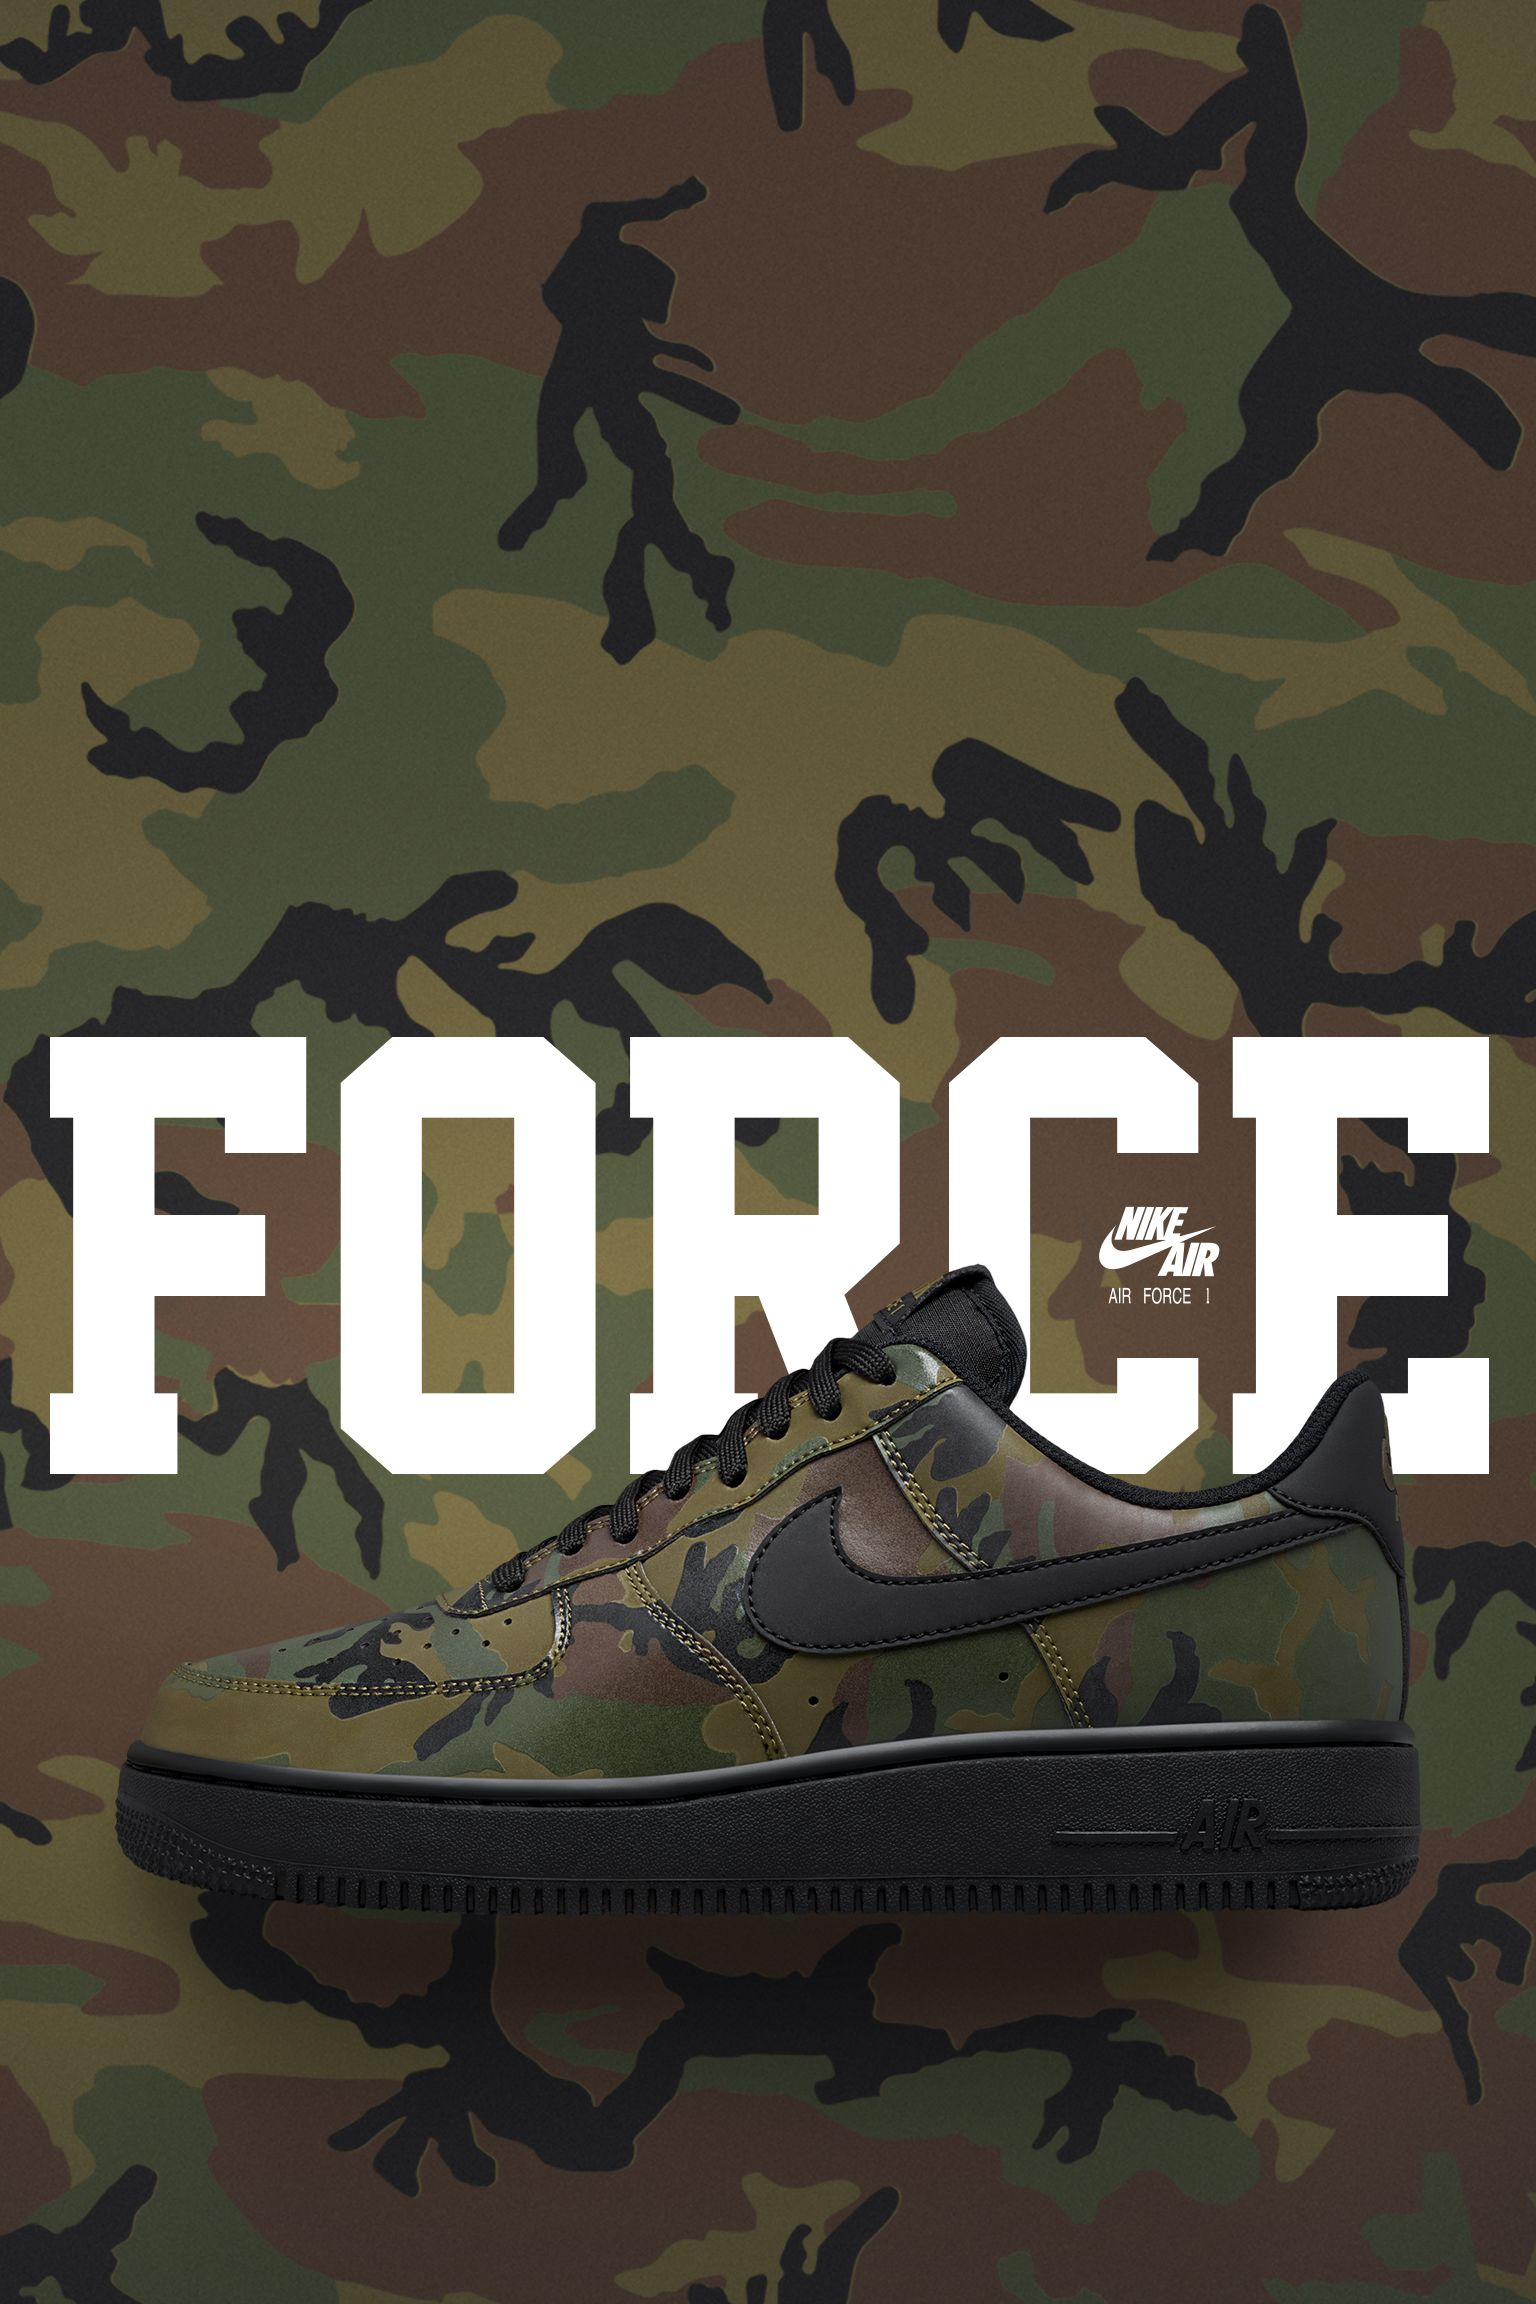 Nike Air Force 1 Low 07 Medium Olive Camo Reflective Release Date Nike Snkrs